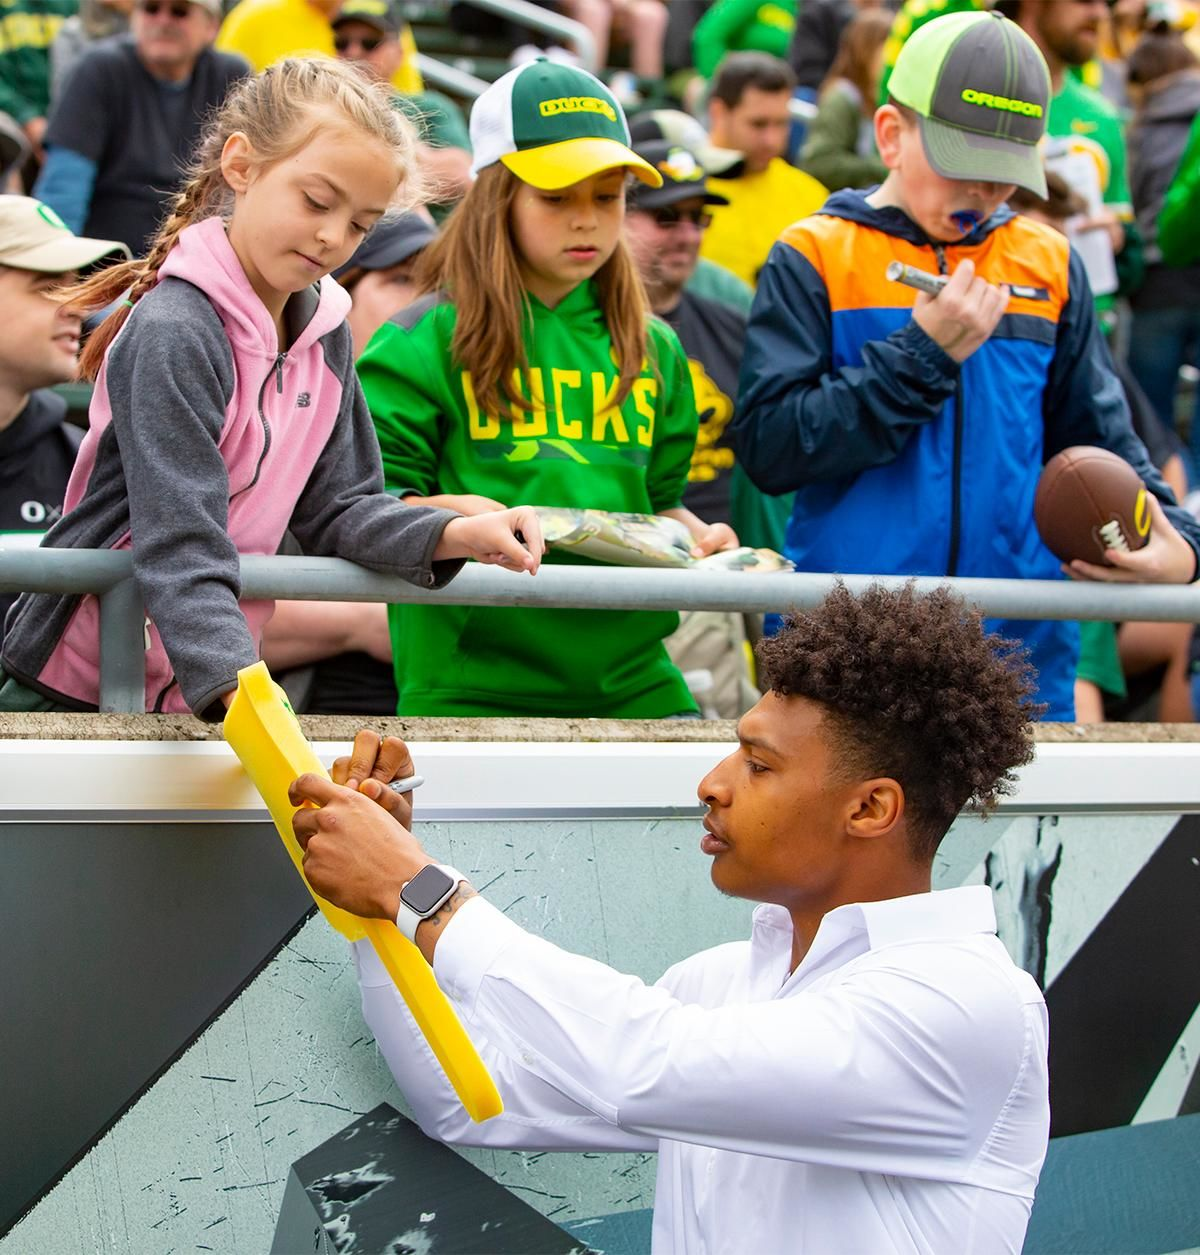 Former Oregon basketball star Dillon Mitchell signs a fan's foam finger during the game. More than 35,000 fans turned out for the University of Oregon's annual spring football game. Mighty Oregon defeated the Fighting Ducks 20 to 13 during the Saturday afternoon game at Autzen Stadium in Eugene, Ore. on April 20, 2019. [Ben Lonergan for KVAL.com] - KVAL.com